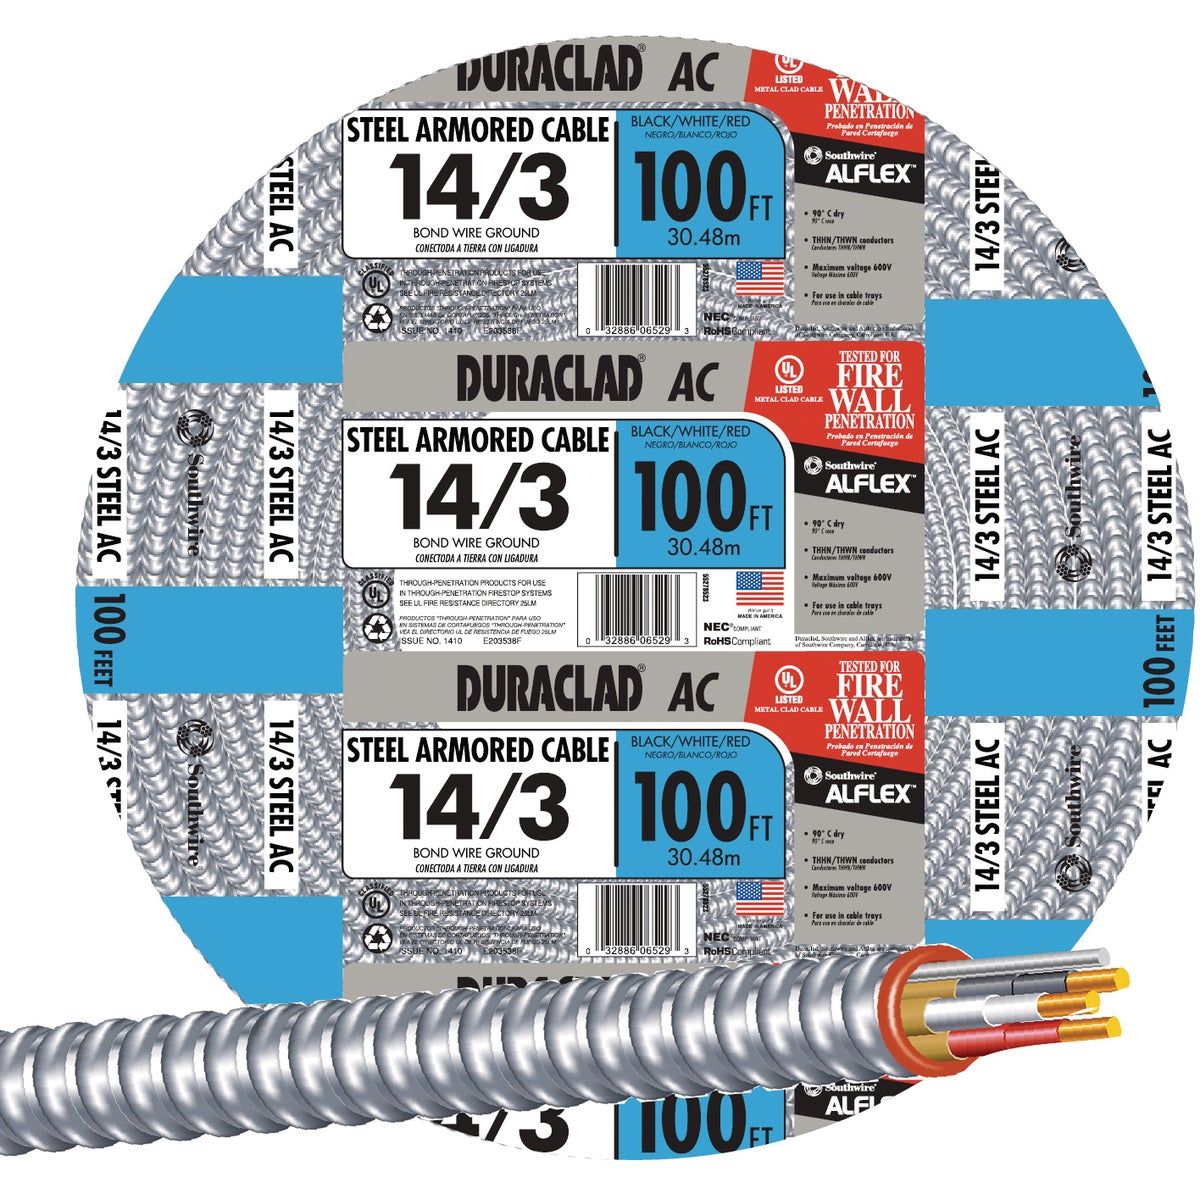 100' 14/3 STL ARMR CABLE - 55278523 by Southwire Company